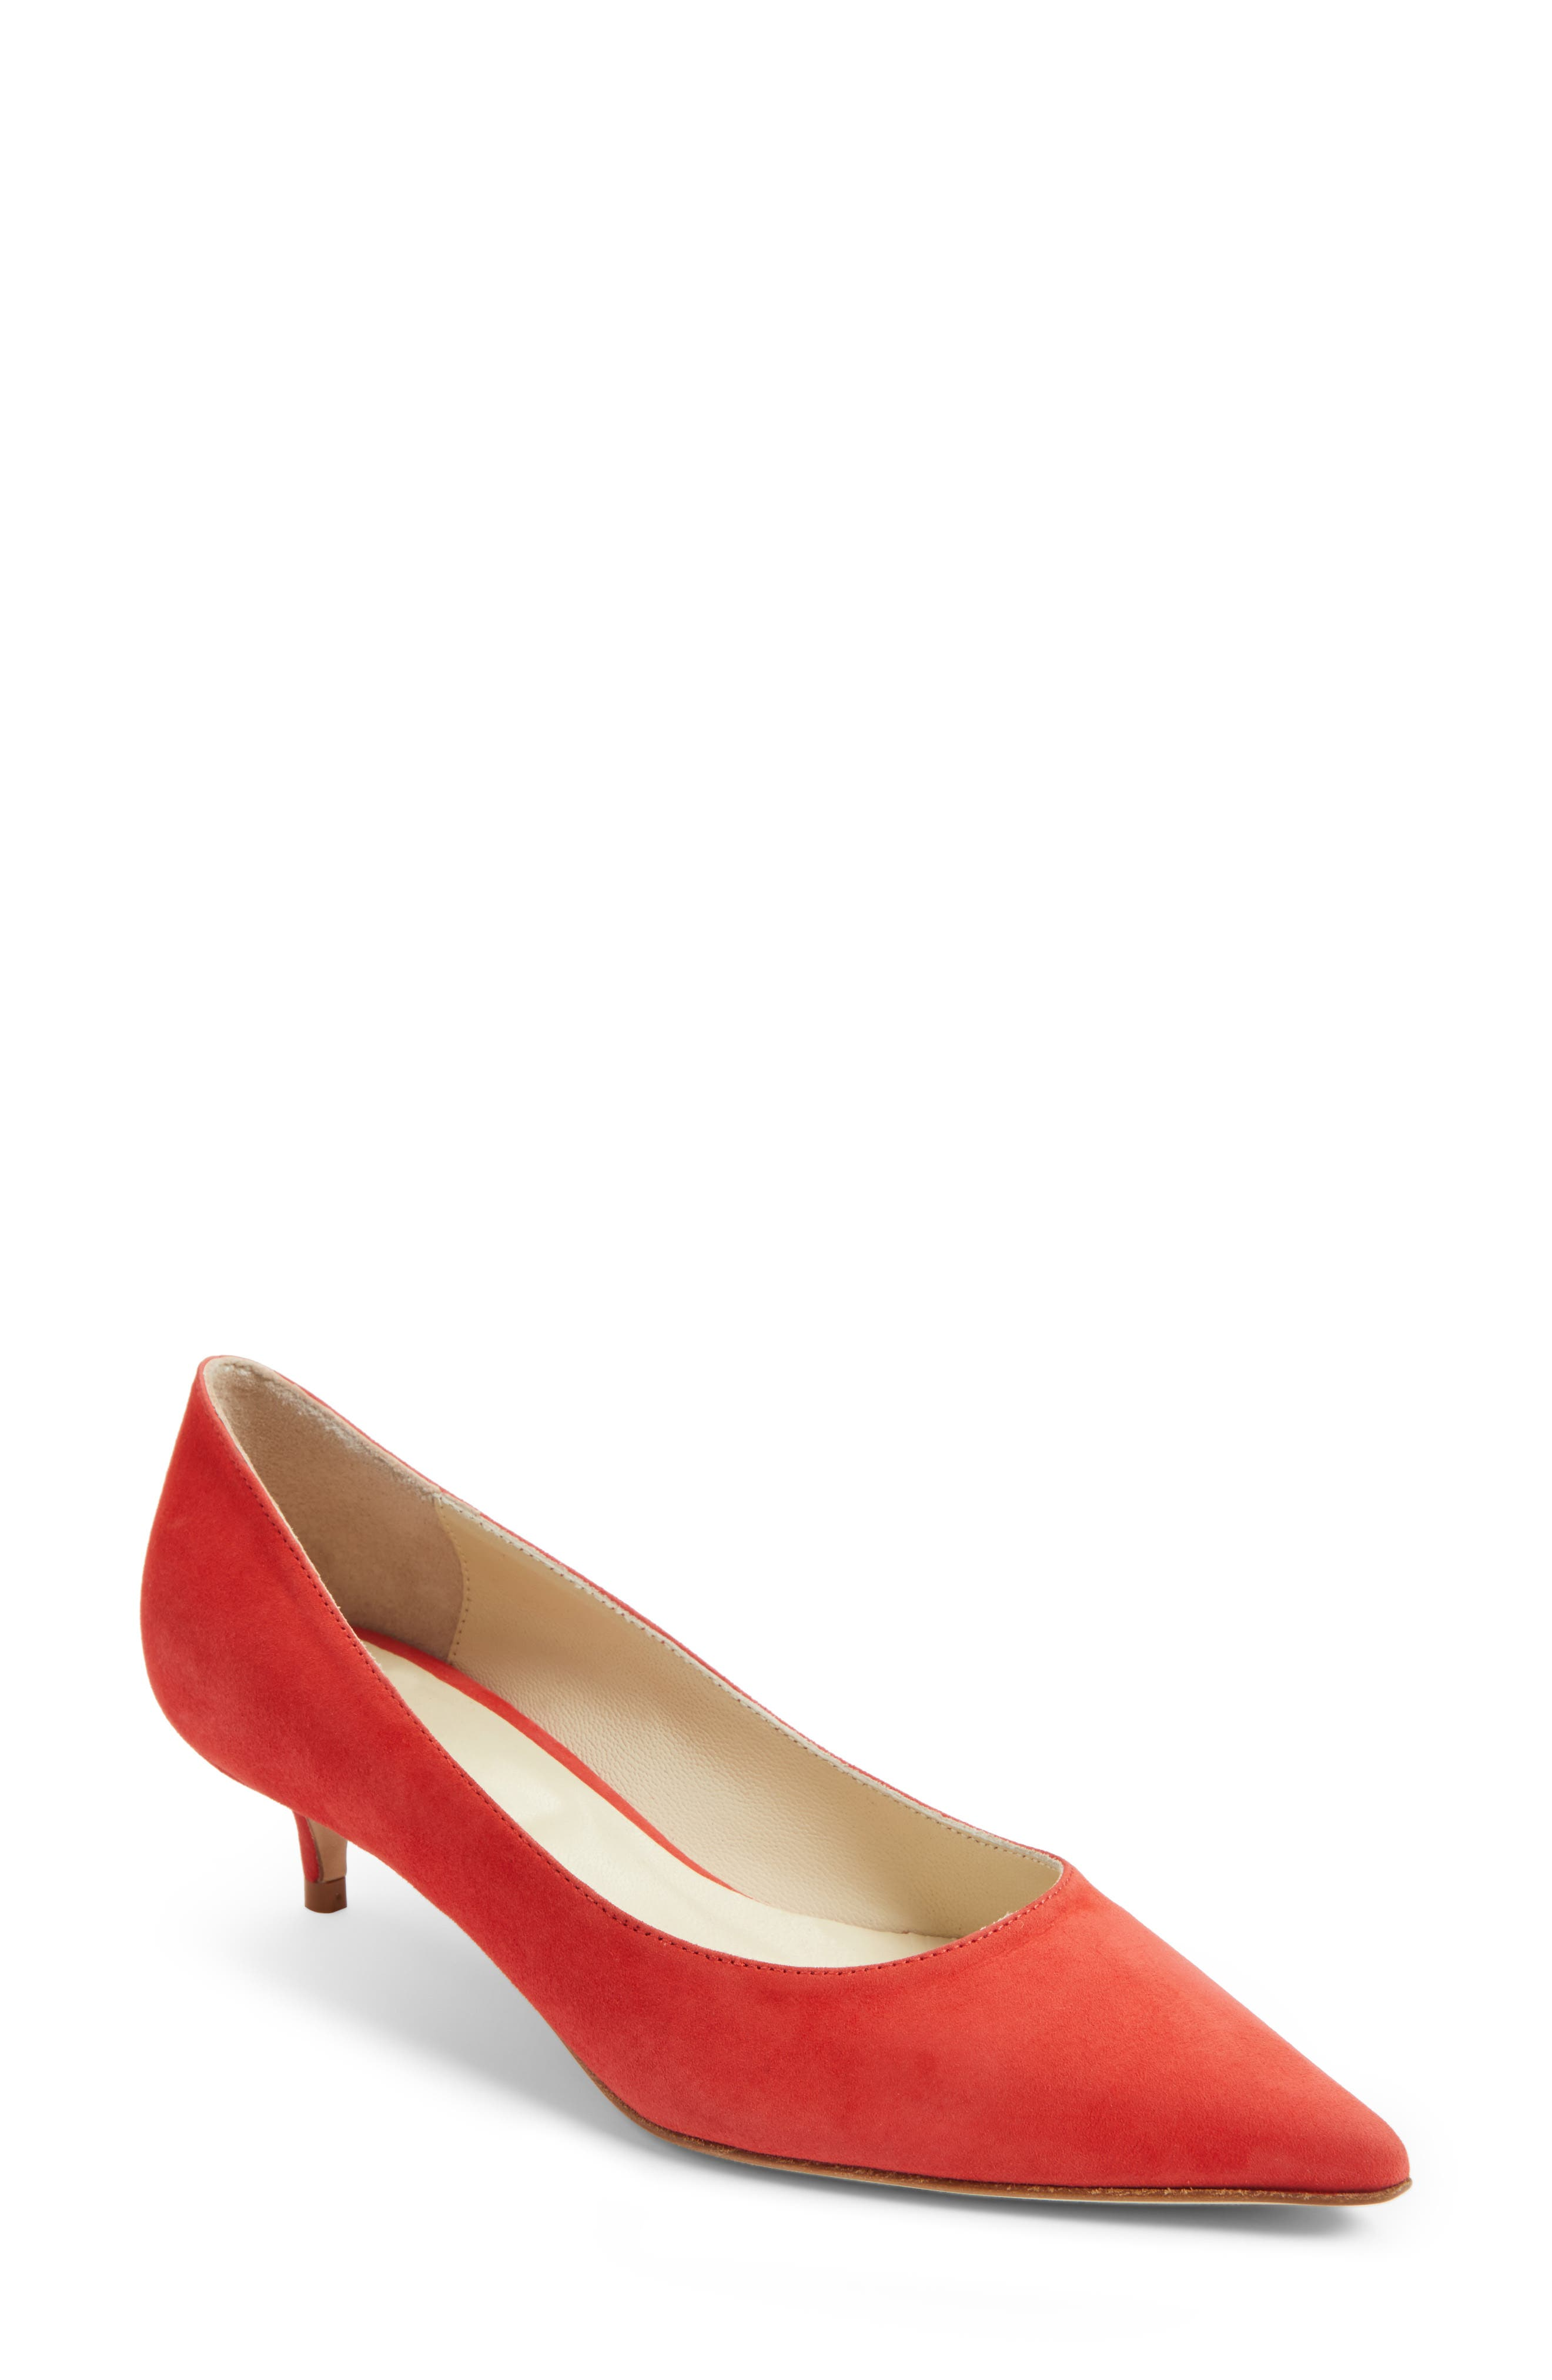 Butter Born Pointy Toe Pump,                             Main thumbnail 7, color,